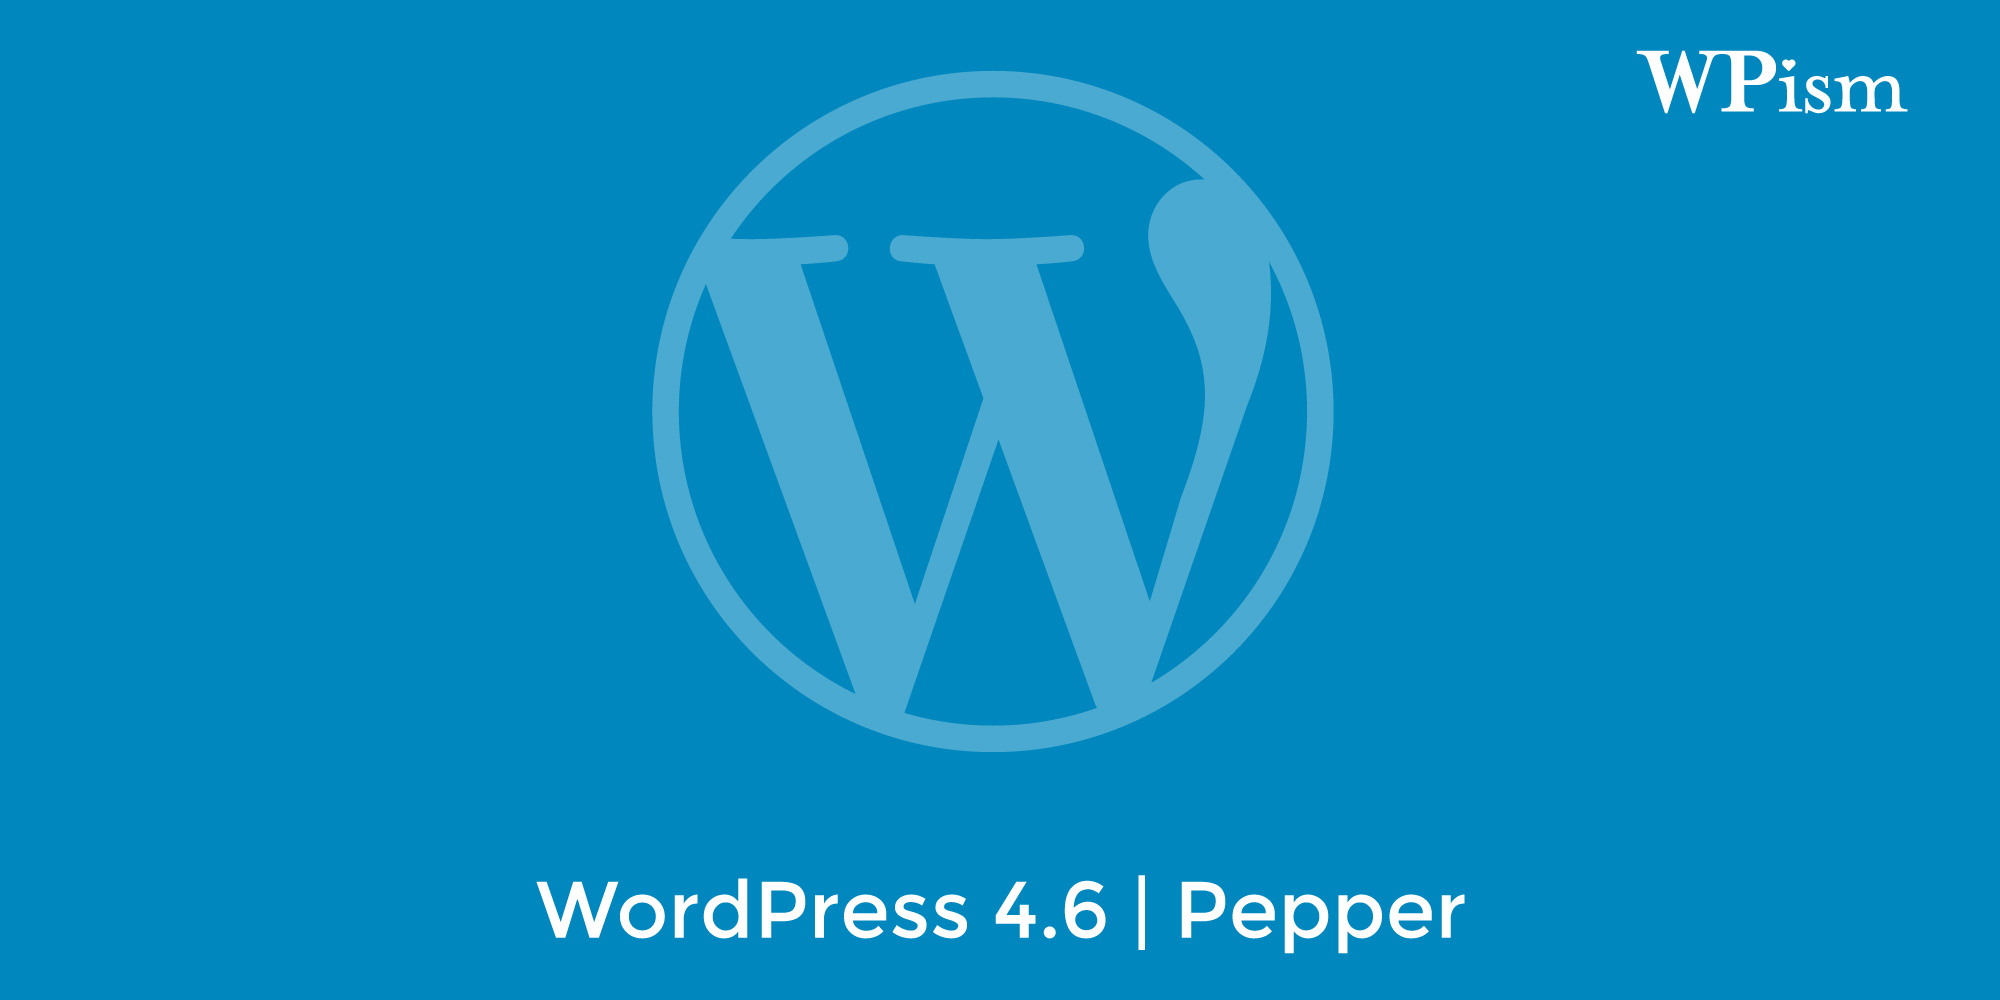 WordPress 4.6 Released – Guide to new Features and Updates